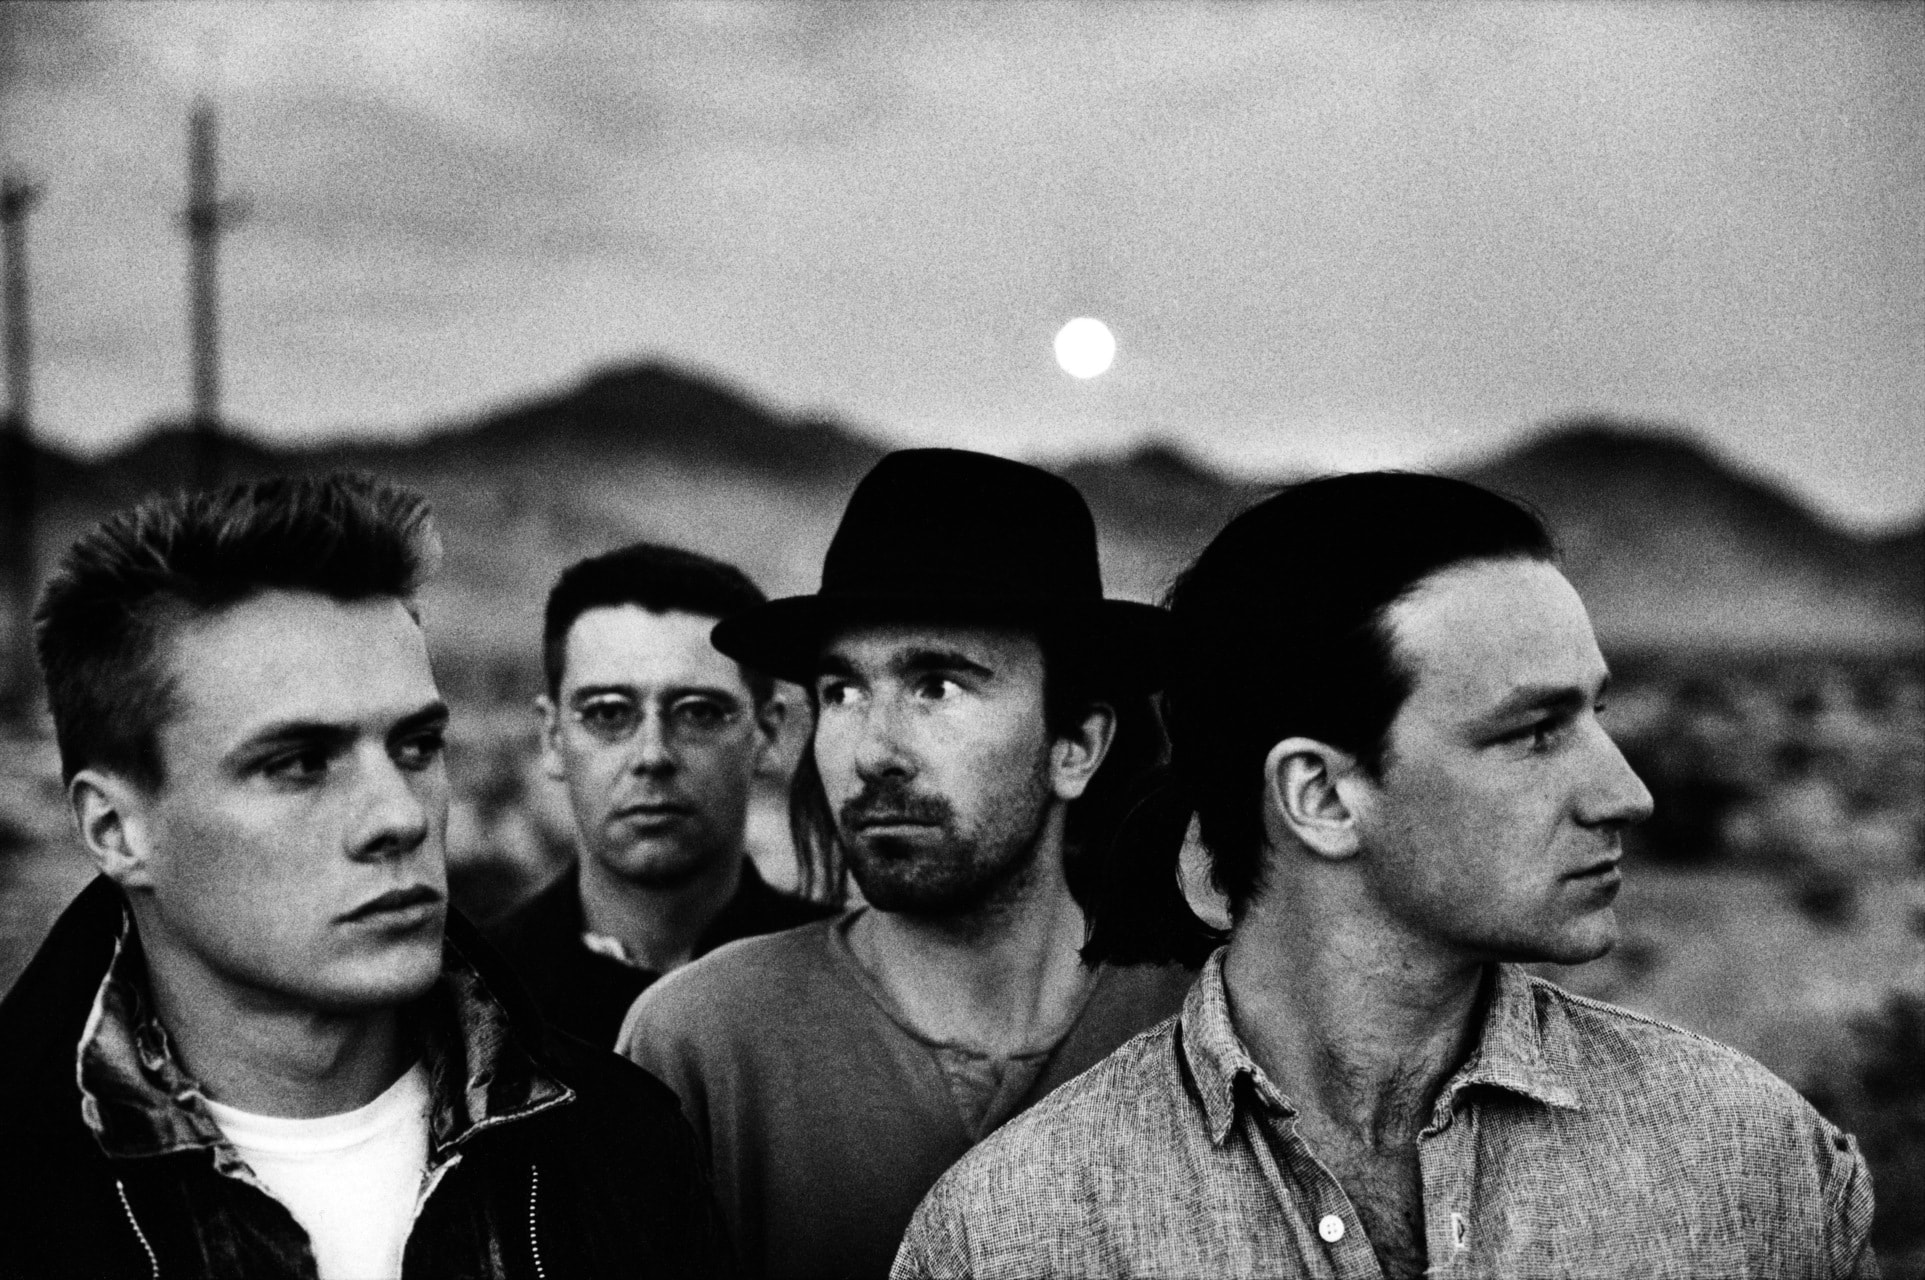 Wallpaper iphone u2 - U2 Pictures U2 Hq Wallpapers